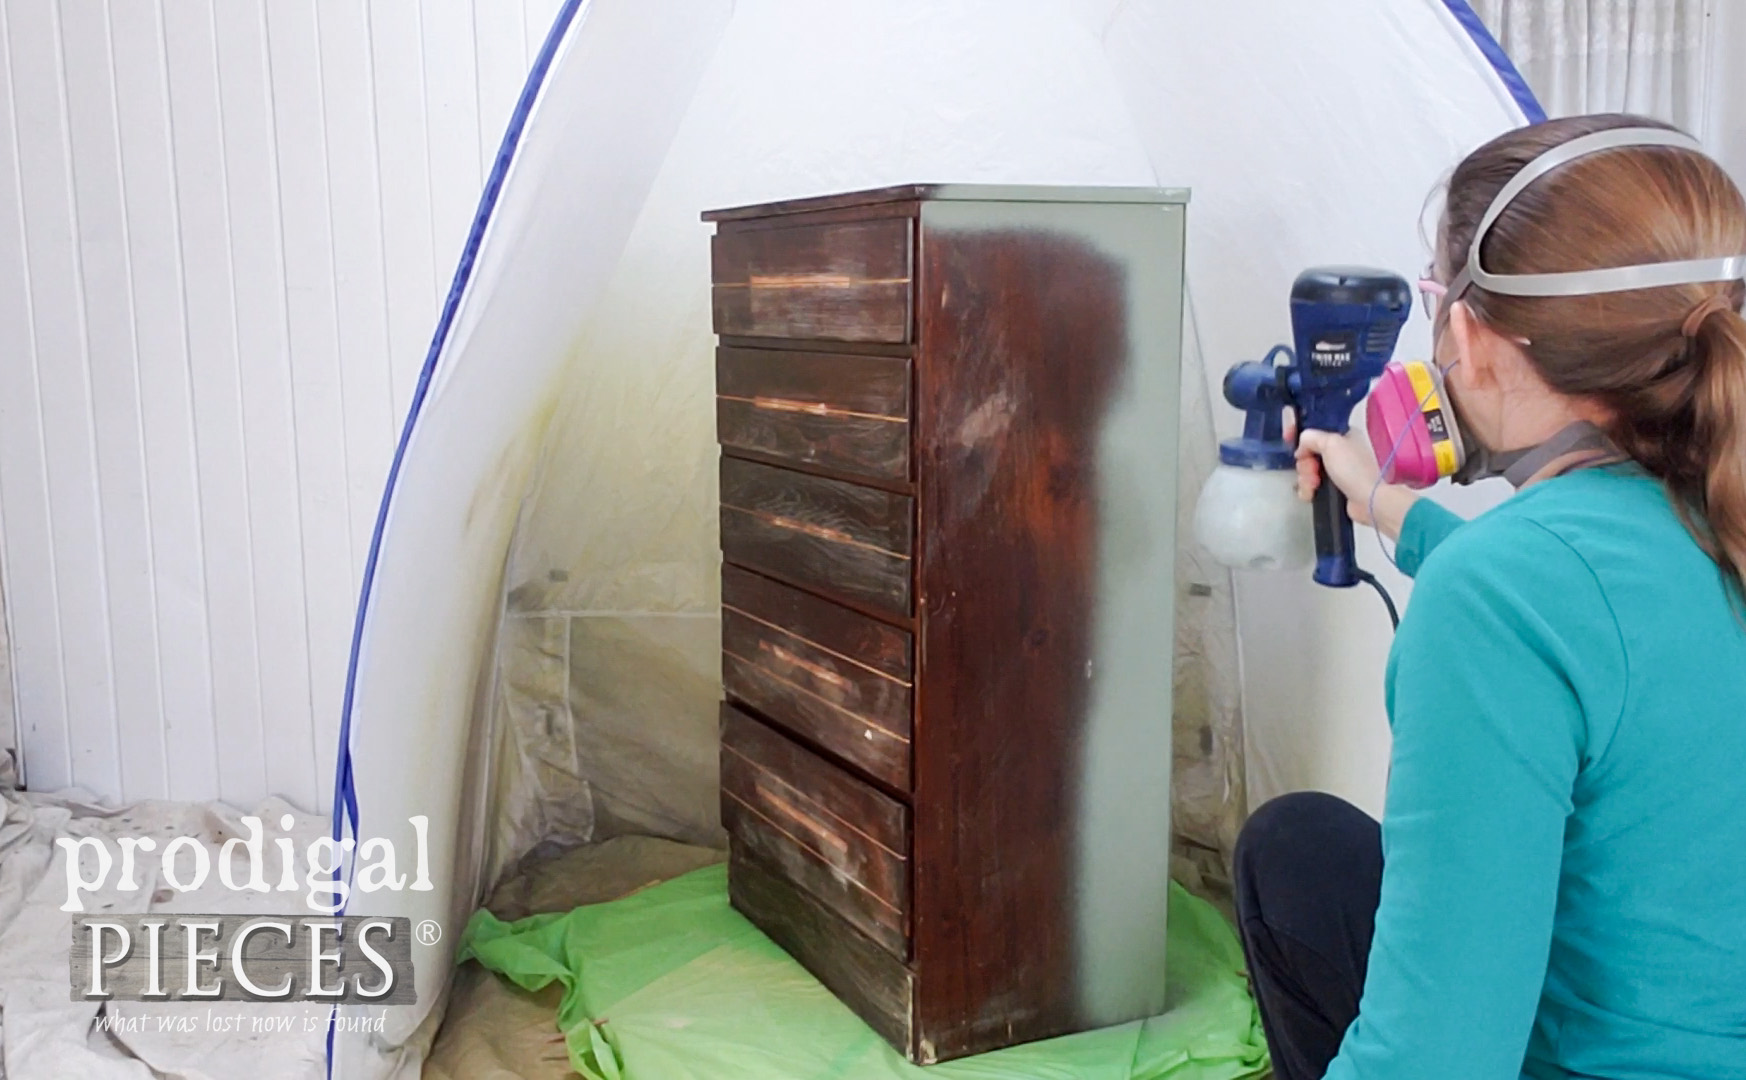 HomeRight Finish Max Extra Paint Sprayer for Upcycled Map Cabinet by Larissa of Prodigal Pieces | prodigalpieces.com #prodigalpieces #diy #furniture #home #homedecor #homedecorideas